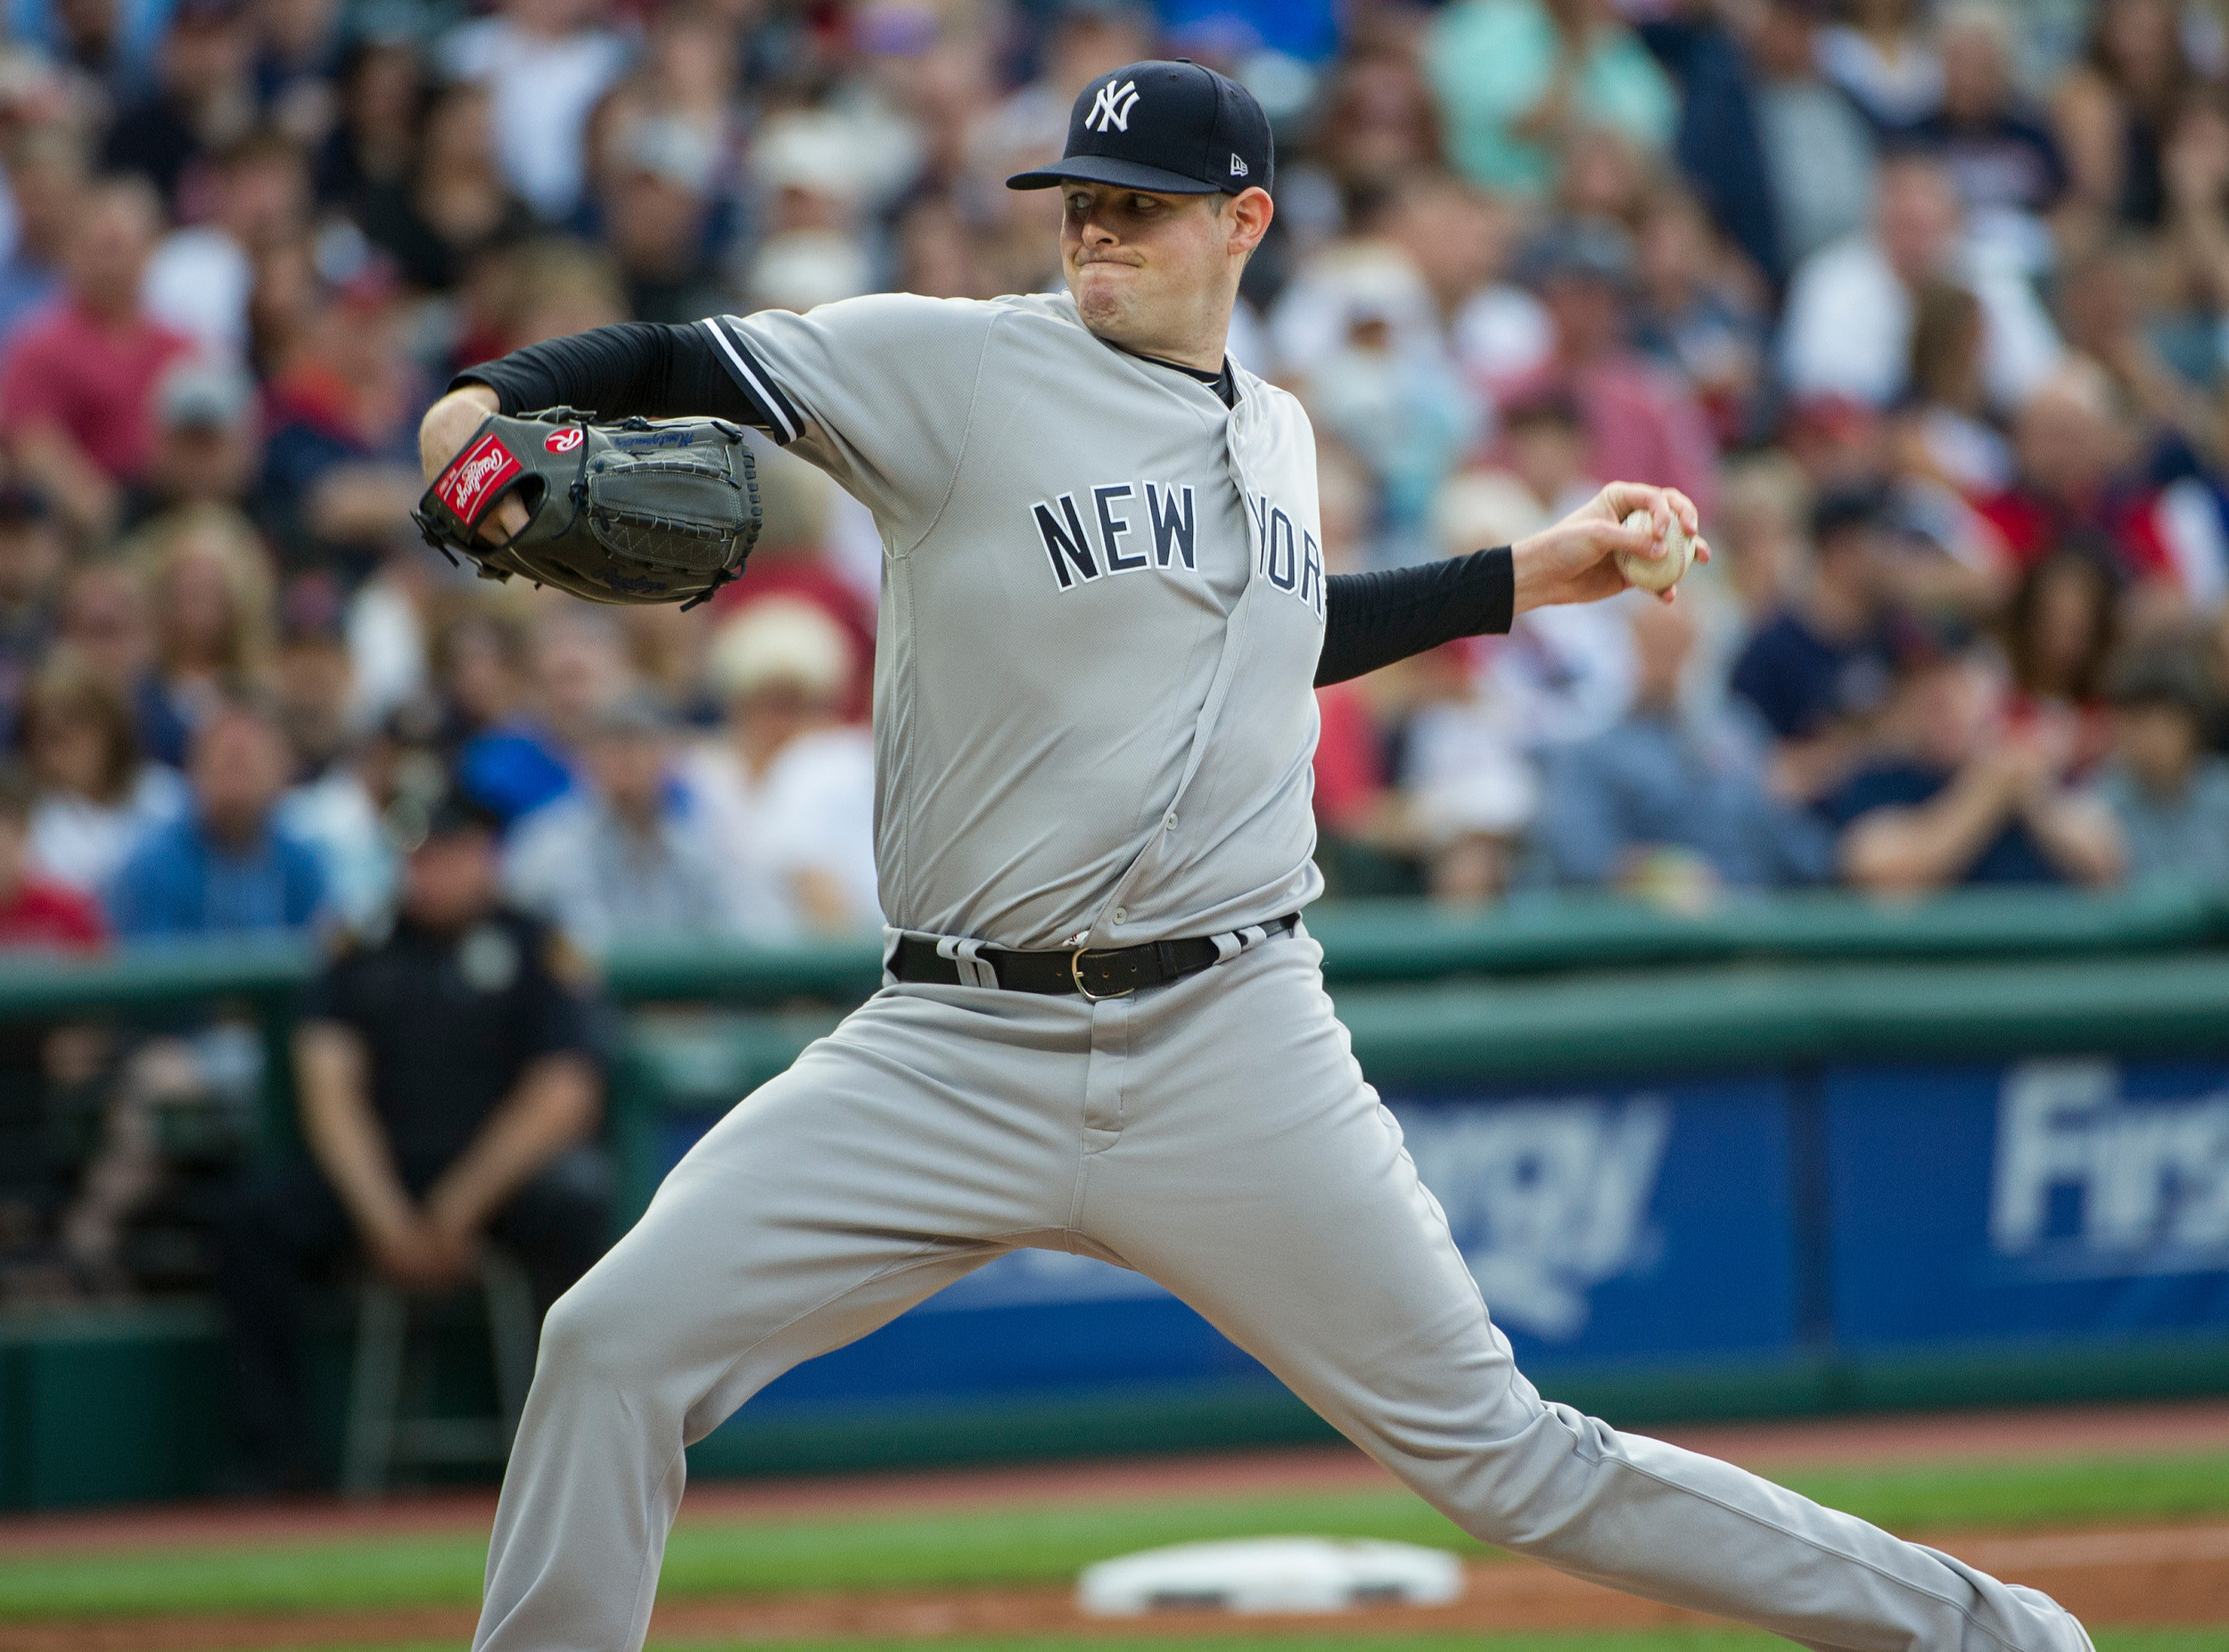 New York Yankees starting pitcher and native Sumterite Jordan Montgomery is likely to be recalled from Triple-A on Sunday and start against the Boston Red Sox after CC Sabathia exited Thursday's game against Toronto with soreness in his arthritic right knee.